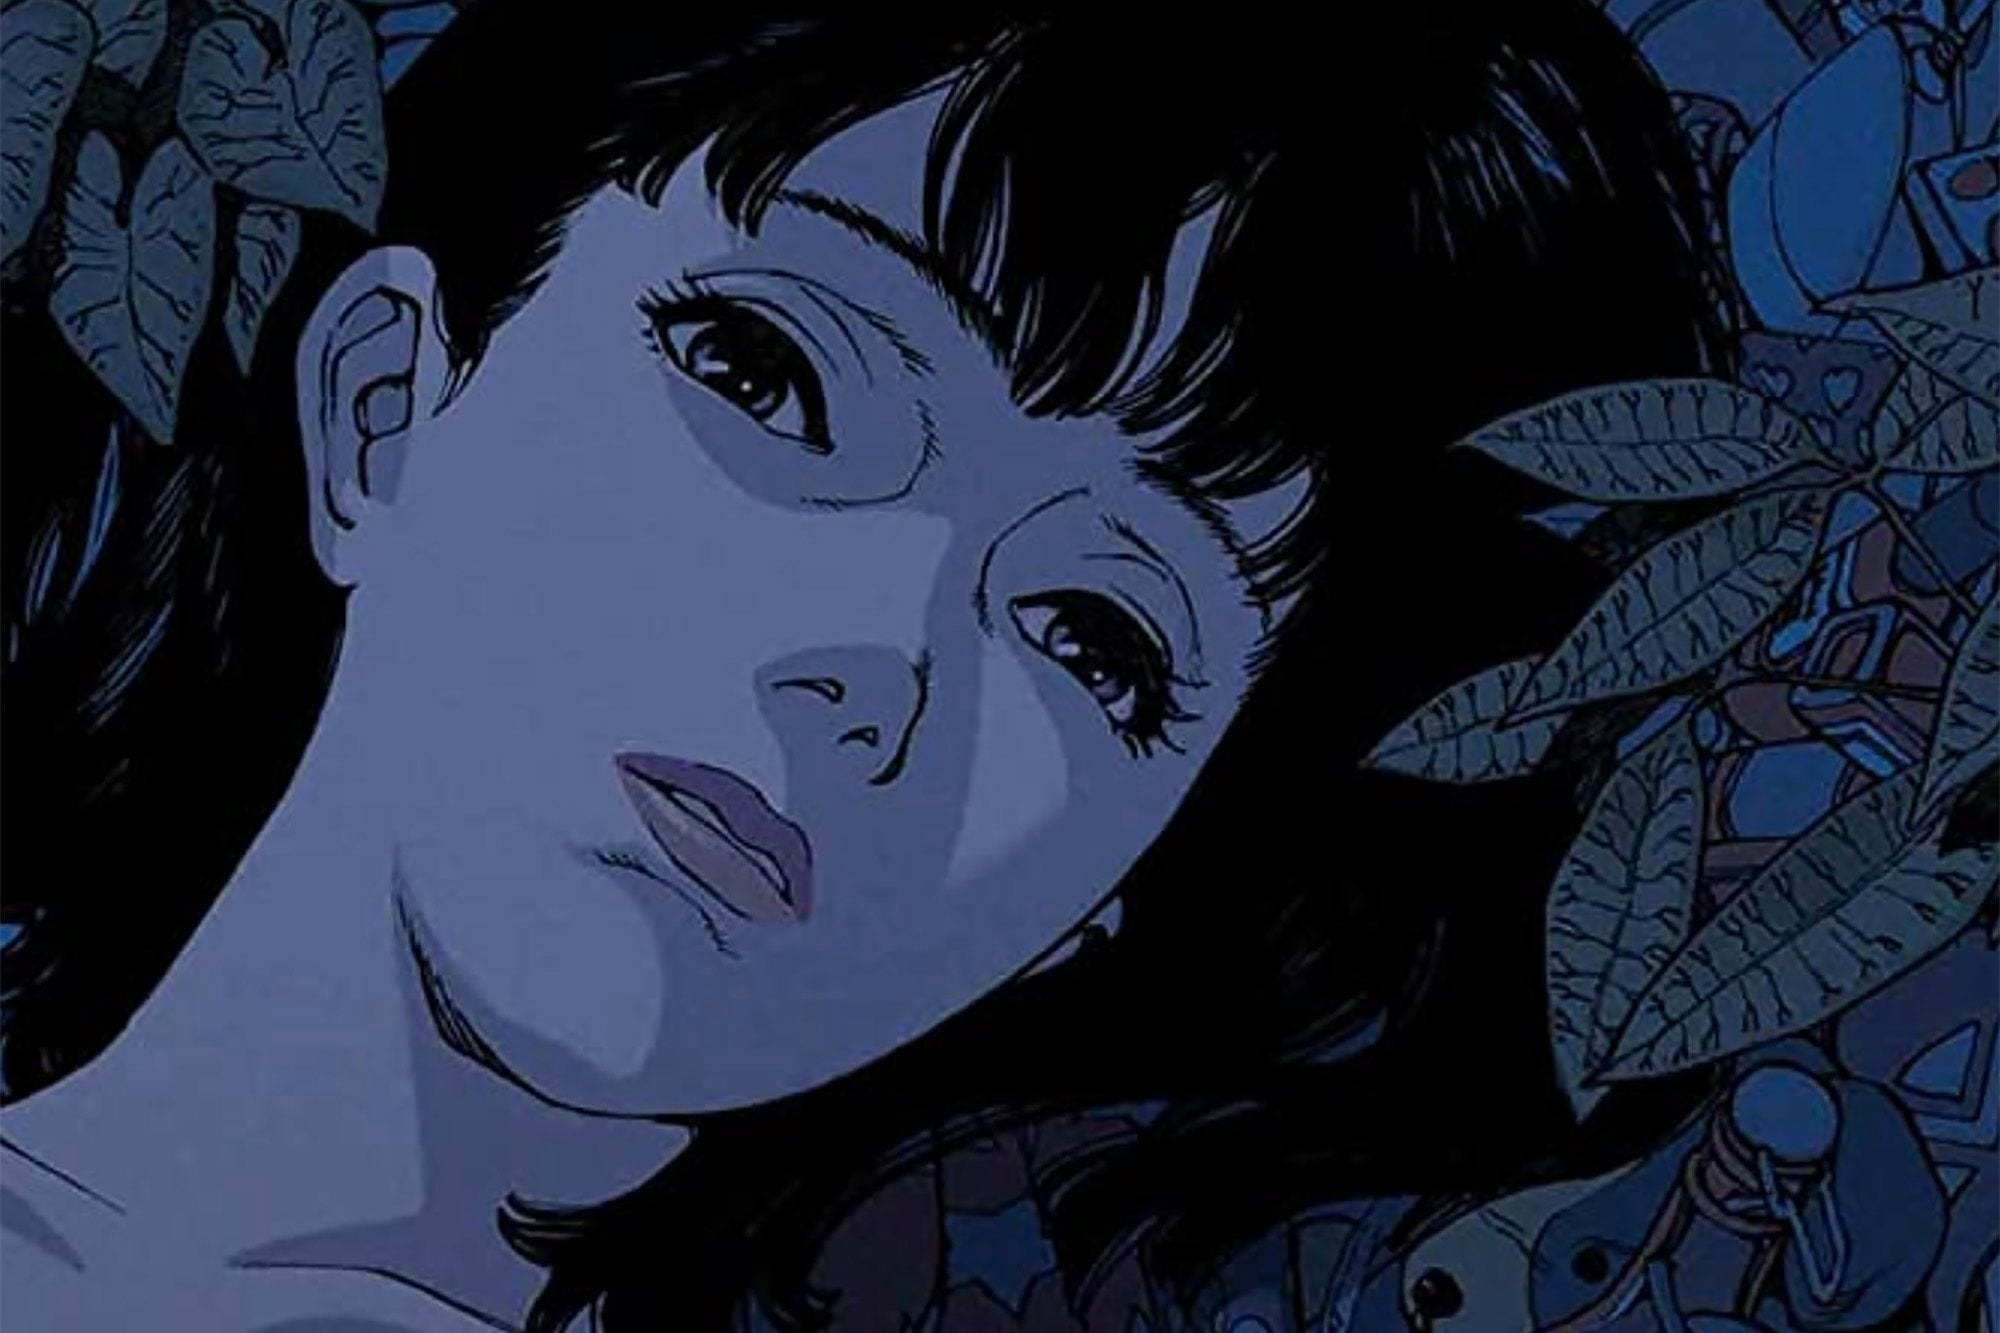 """The """"Luxurious Loneliness"""" of Anime Film 'Perfect Blue'"""